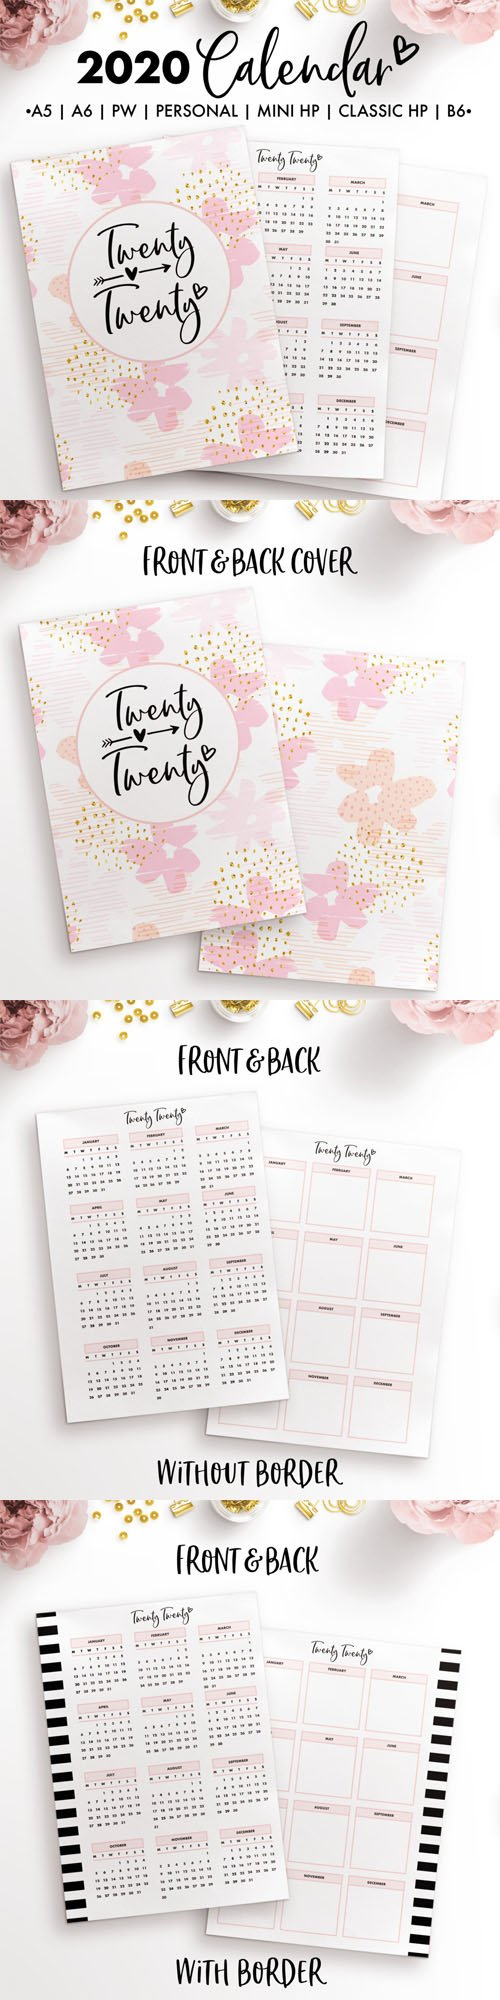 2020 Calendar - 3 Pages [A5/A6/B6/Personal/Personal Wide/Mini HP/Classic HP]